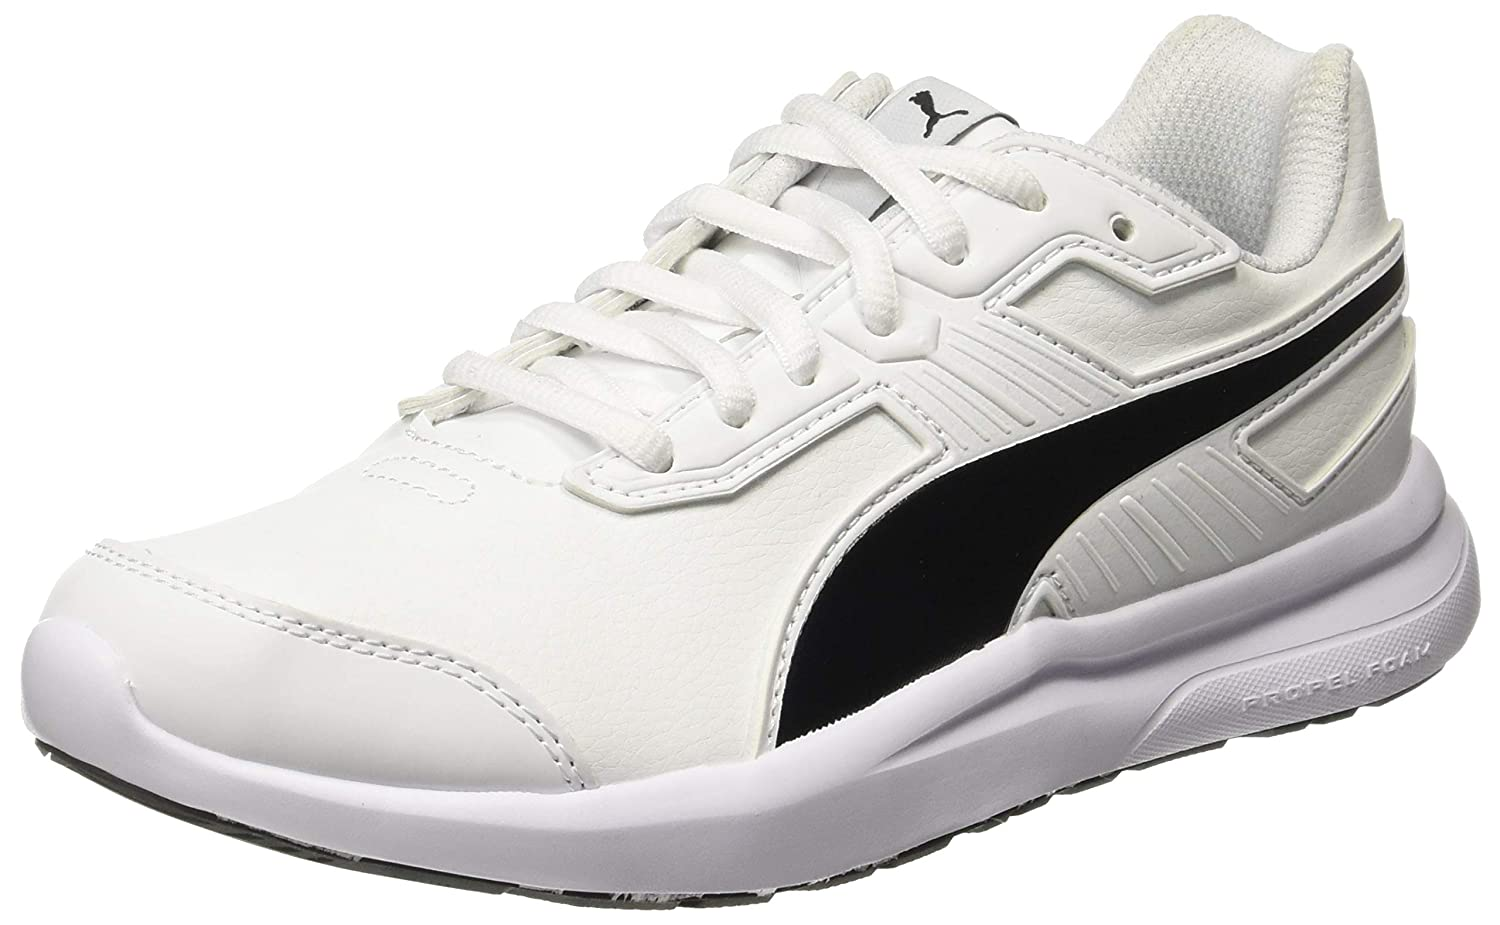 Puma Escaper SL, Zapatillas de Cross Unisex Adulto